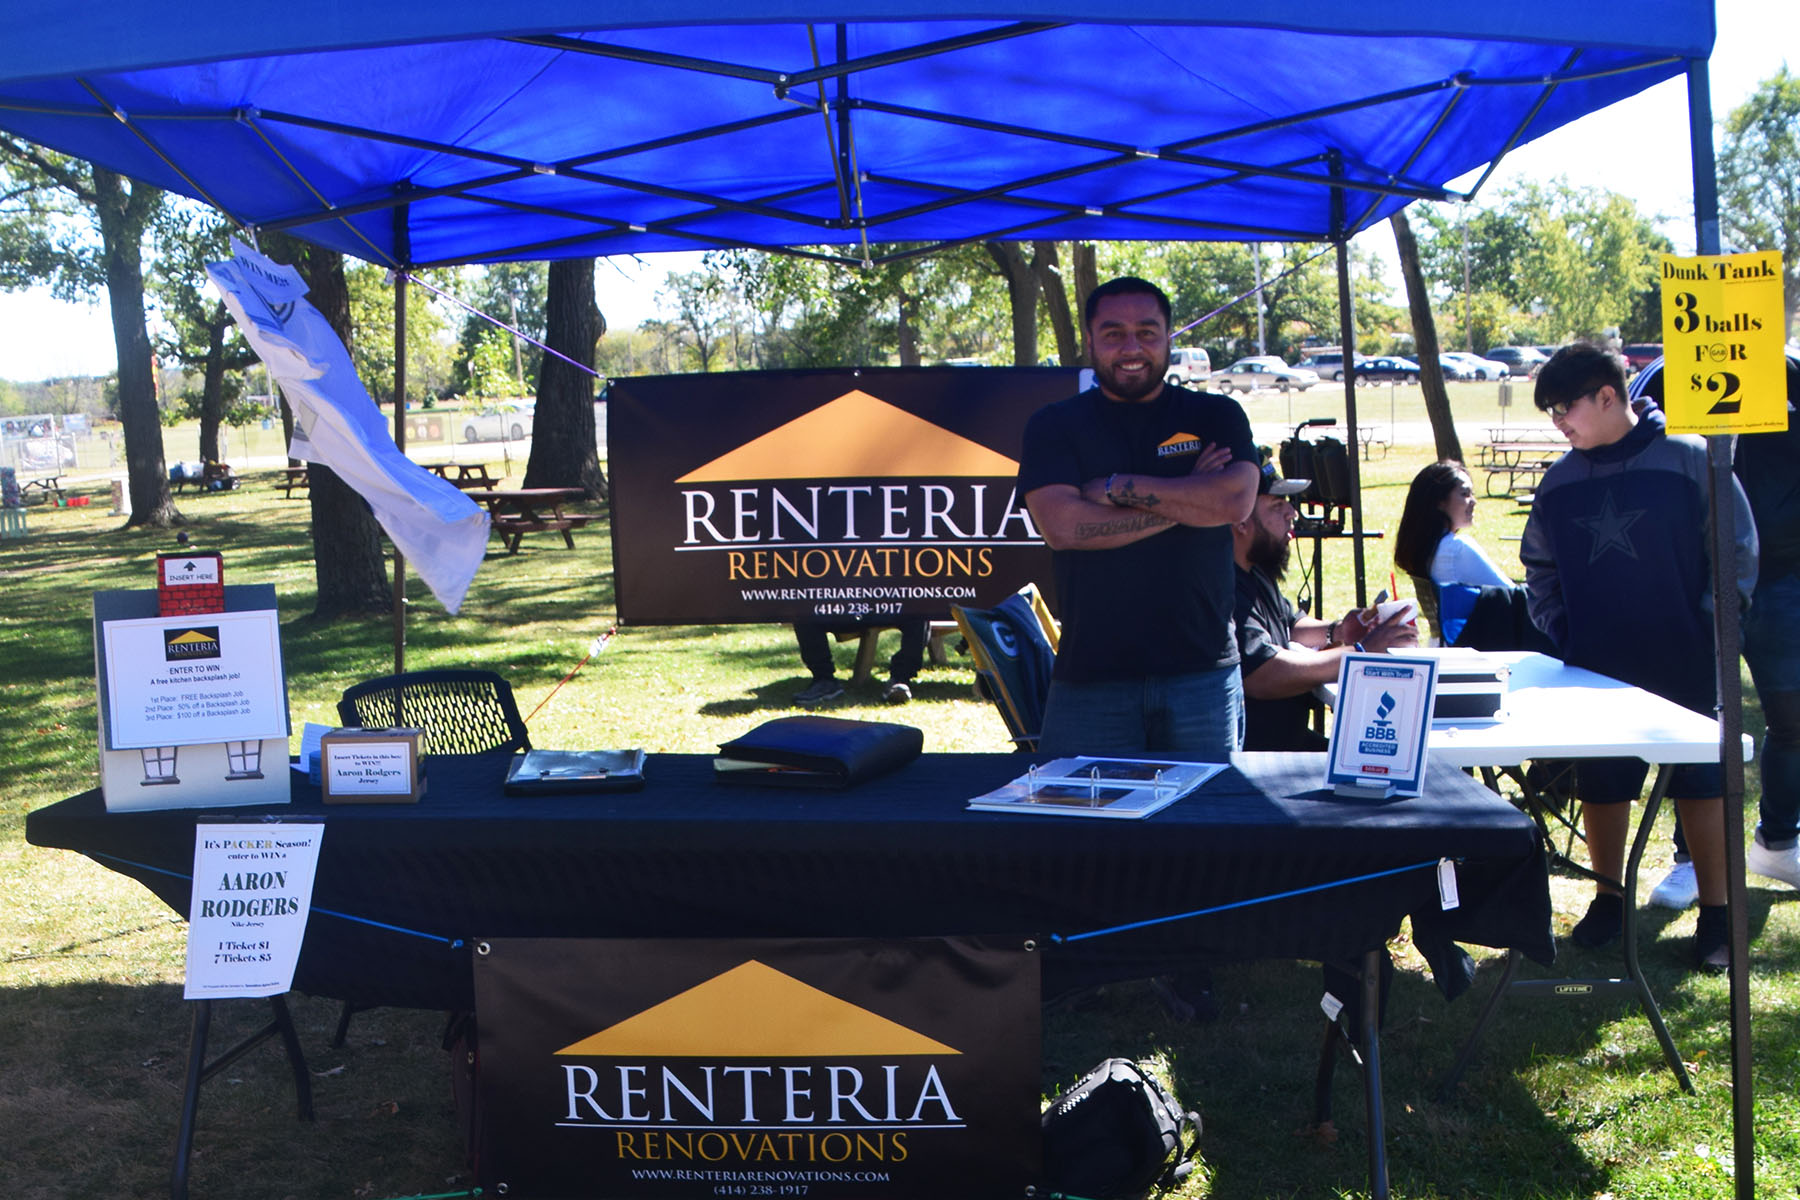 Renteria Renovations table tent set up with Juan standing